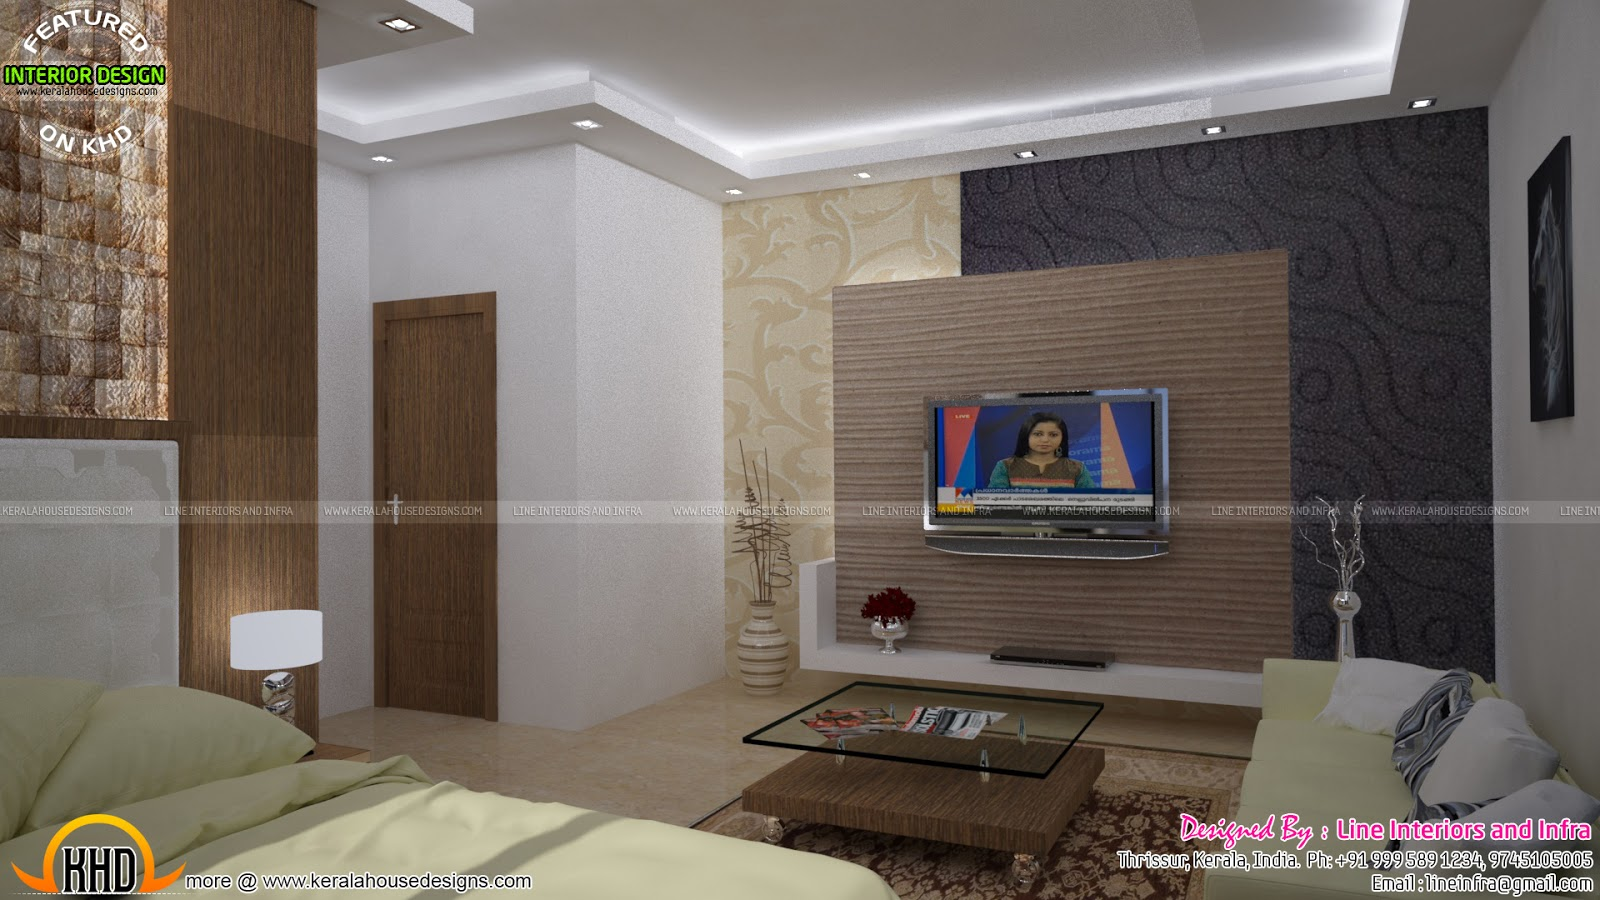 Bedroom And Kitchen Interior Decor Kerala Home Design And Floor Plans